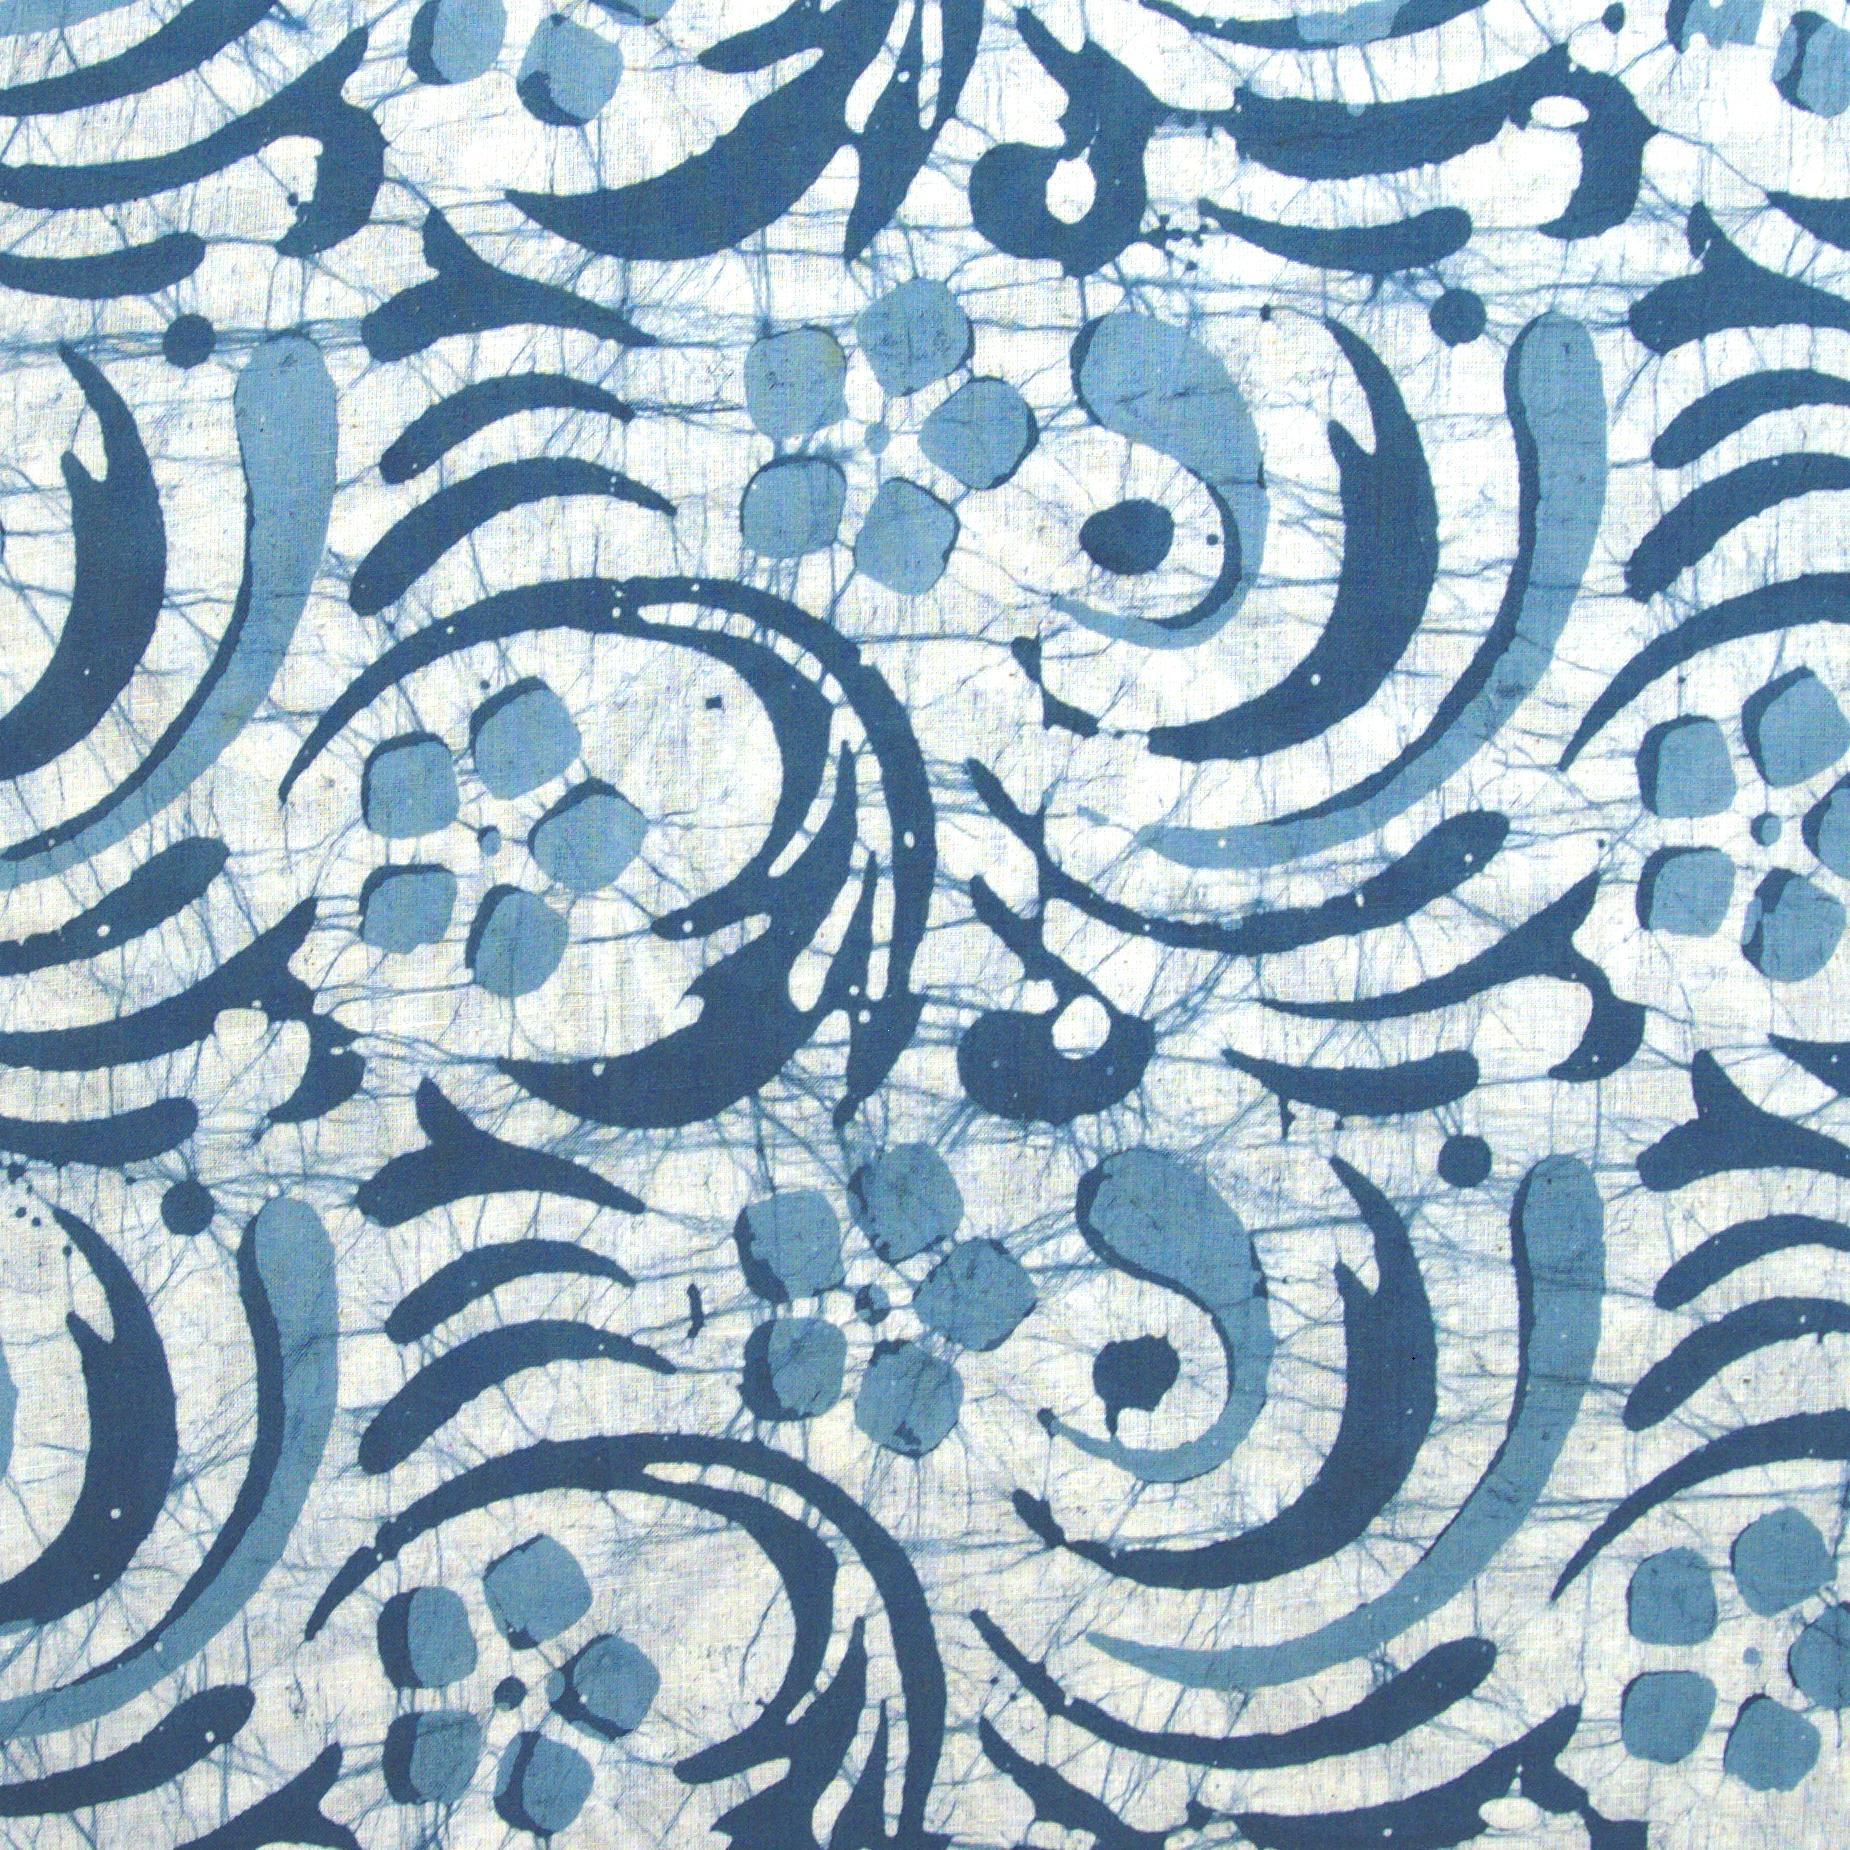 2 - SHA14 - 100% Block-Printed Batik Cotton Fabric From India - Batik - Blue Swirls